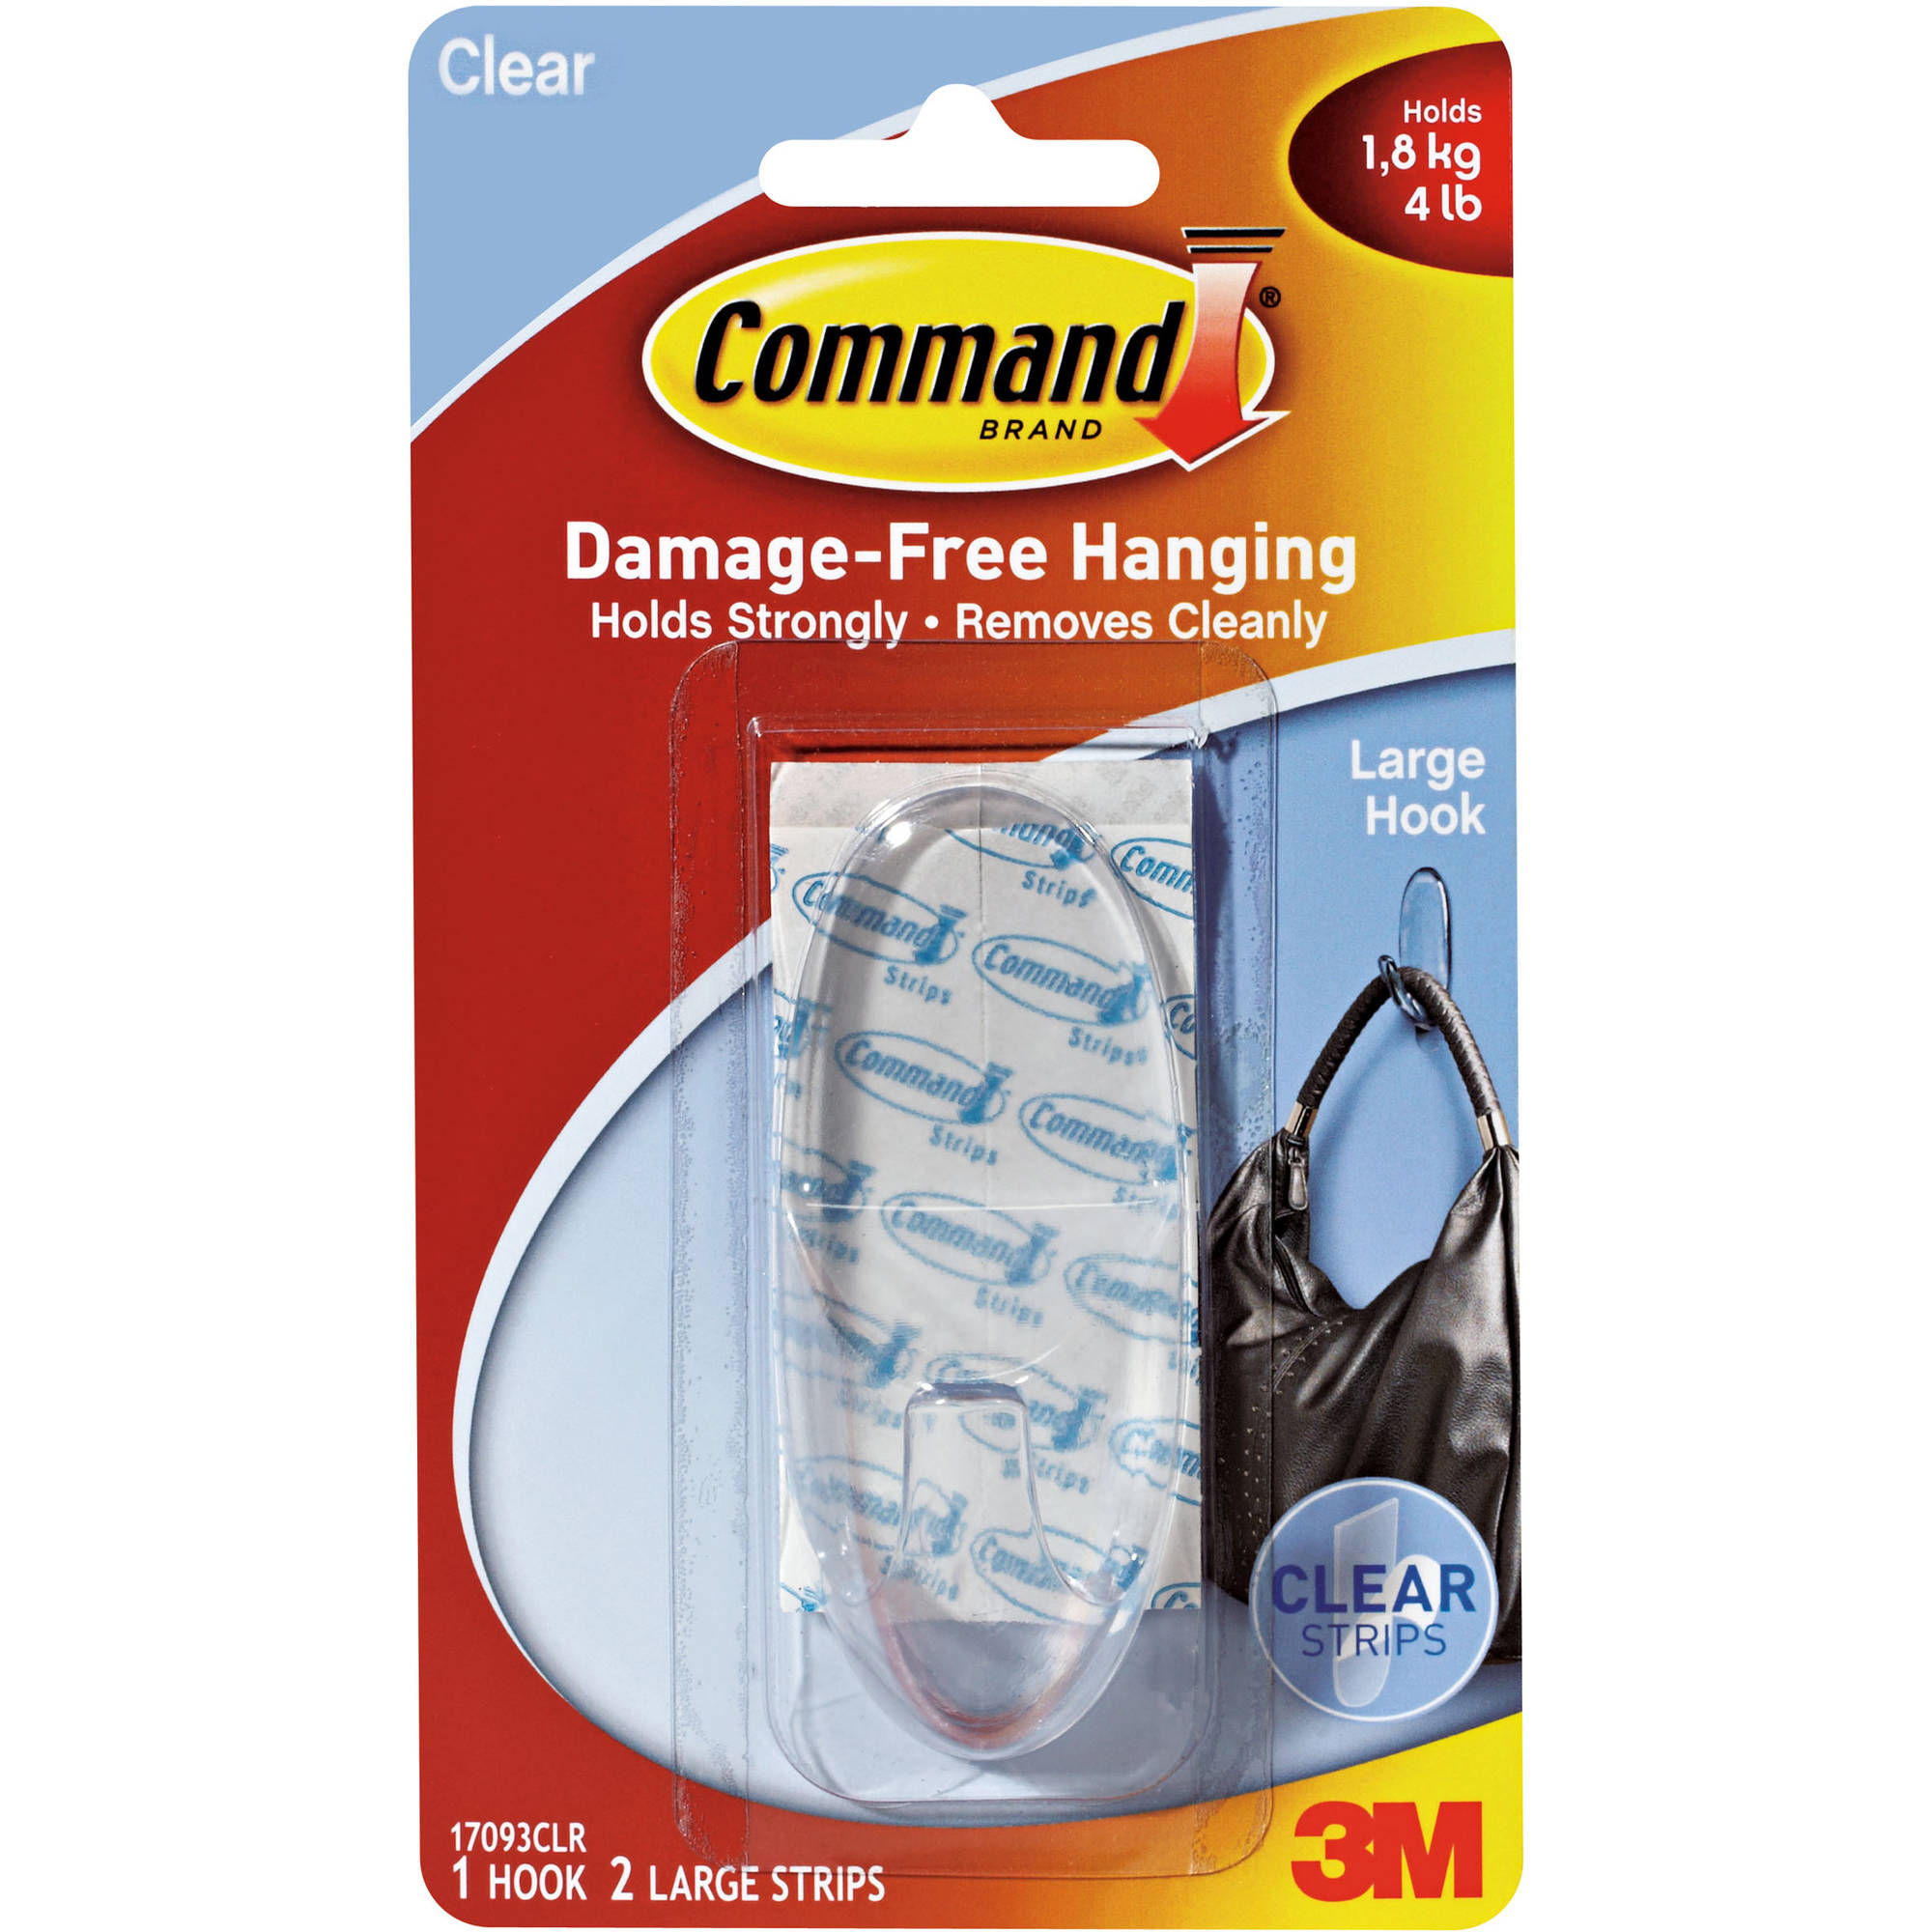 Command Large Clear Hook with Clear Strips, 1 Hook, 2 Strips, 17093CLR